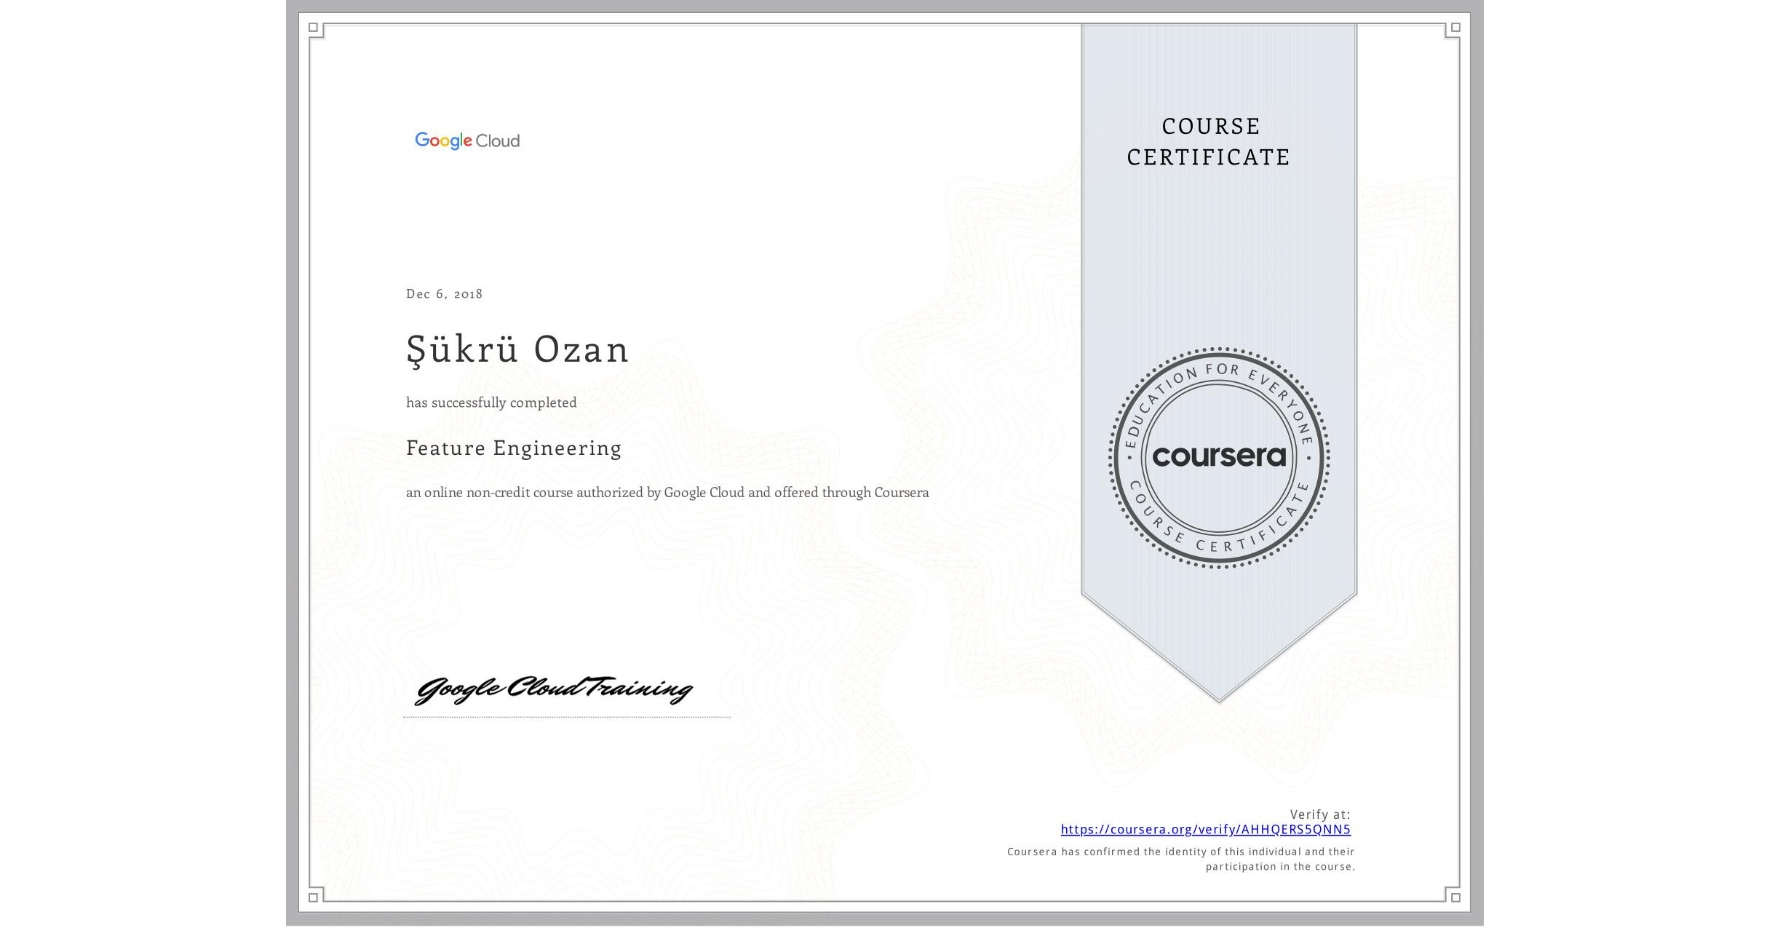 View certificate for Şükrü Ozan, Feature Engineering, an online non-credit course authorized by Google Cloud and offered through Coursera